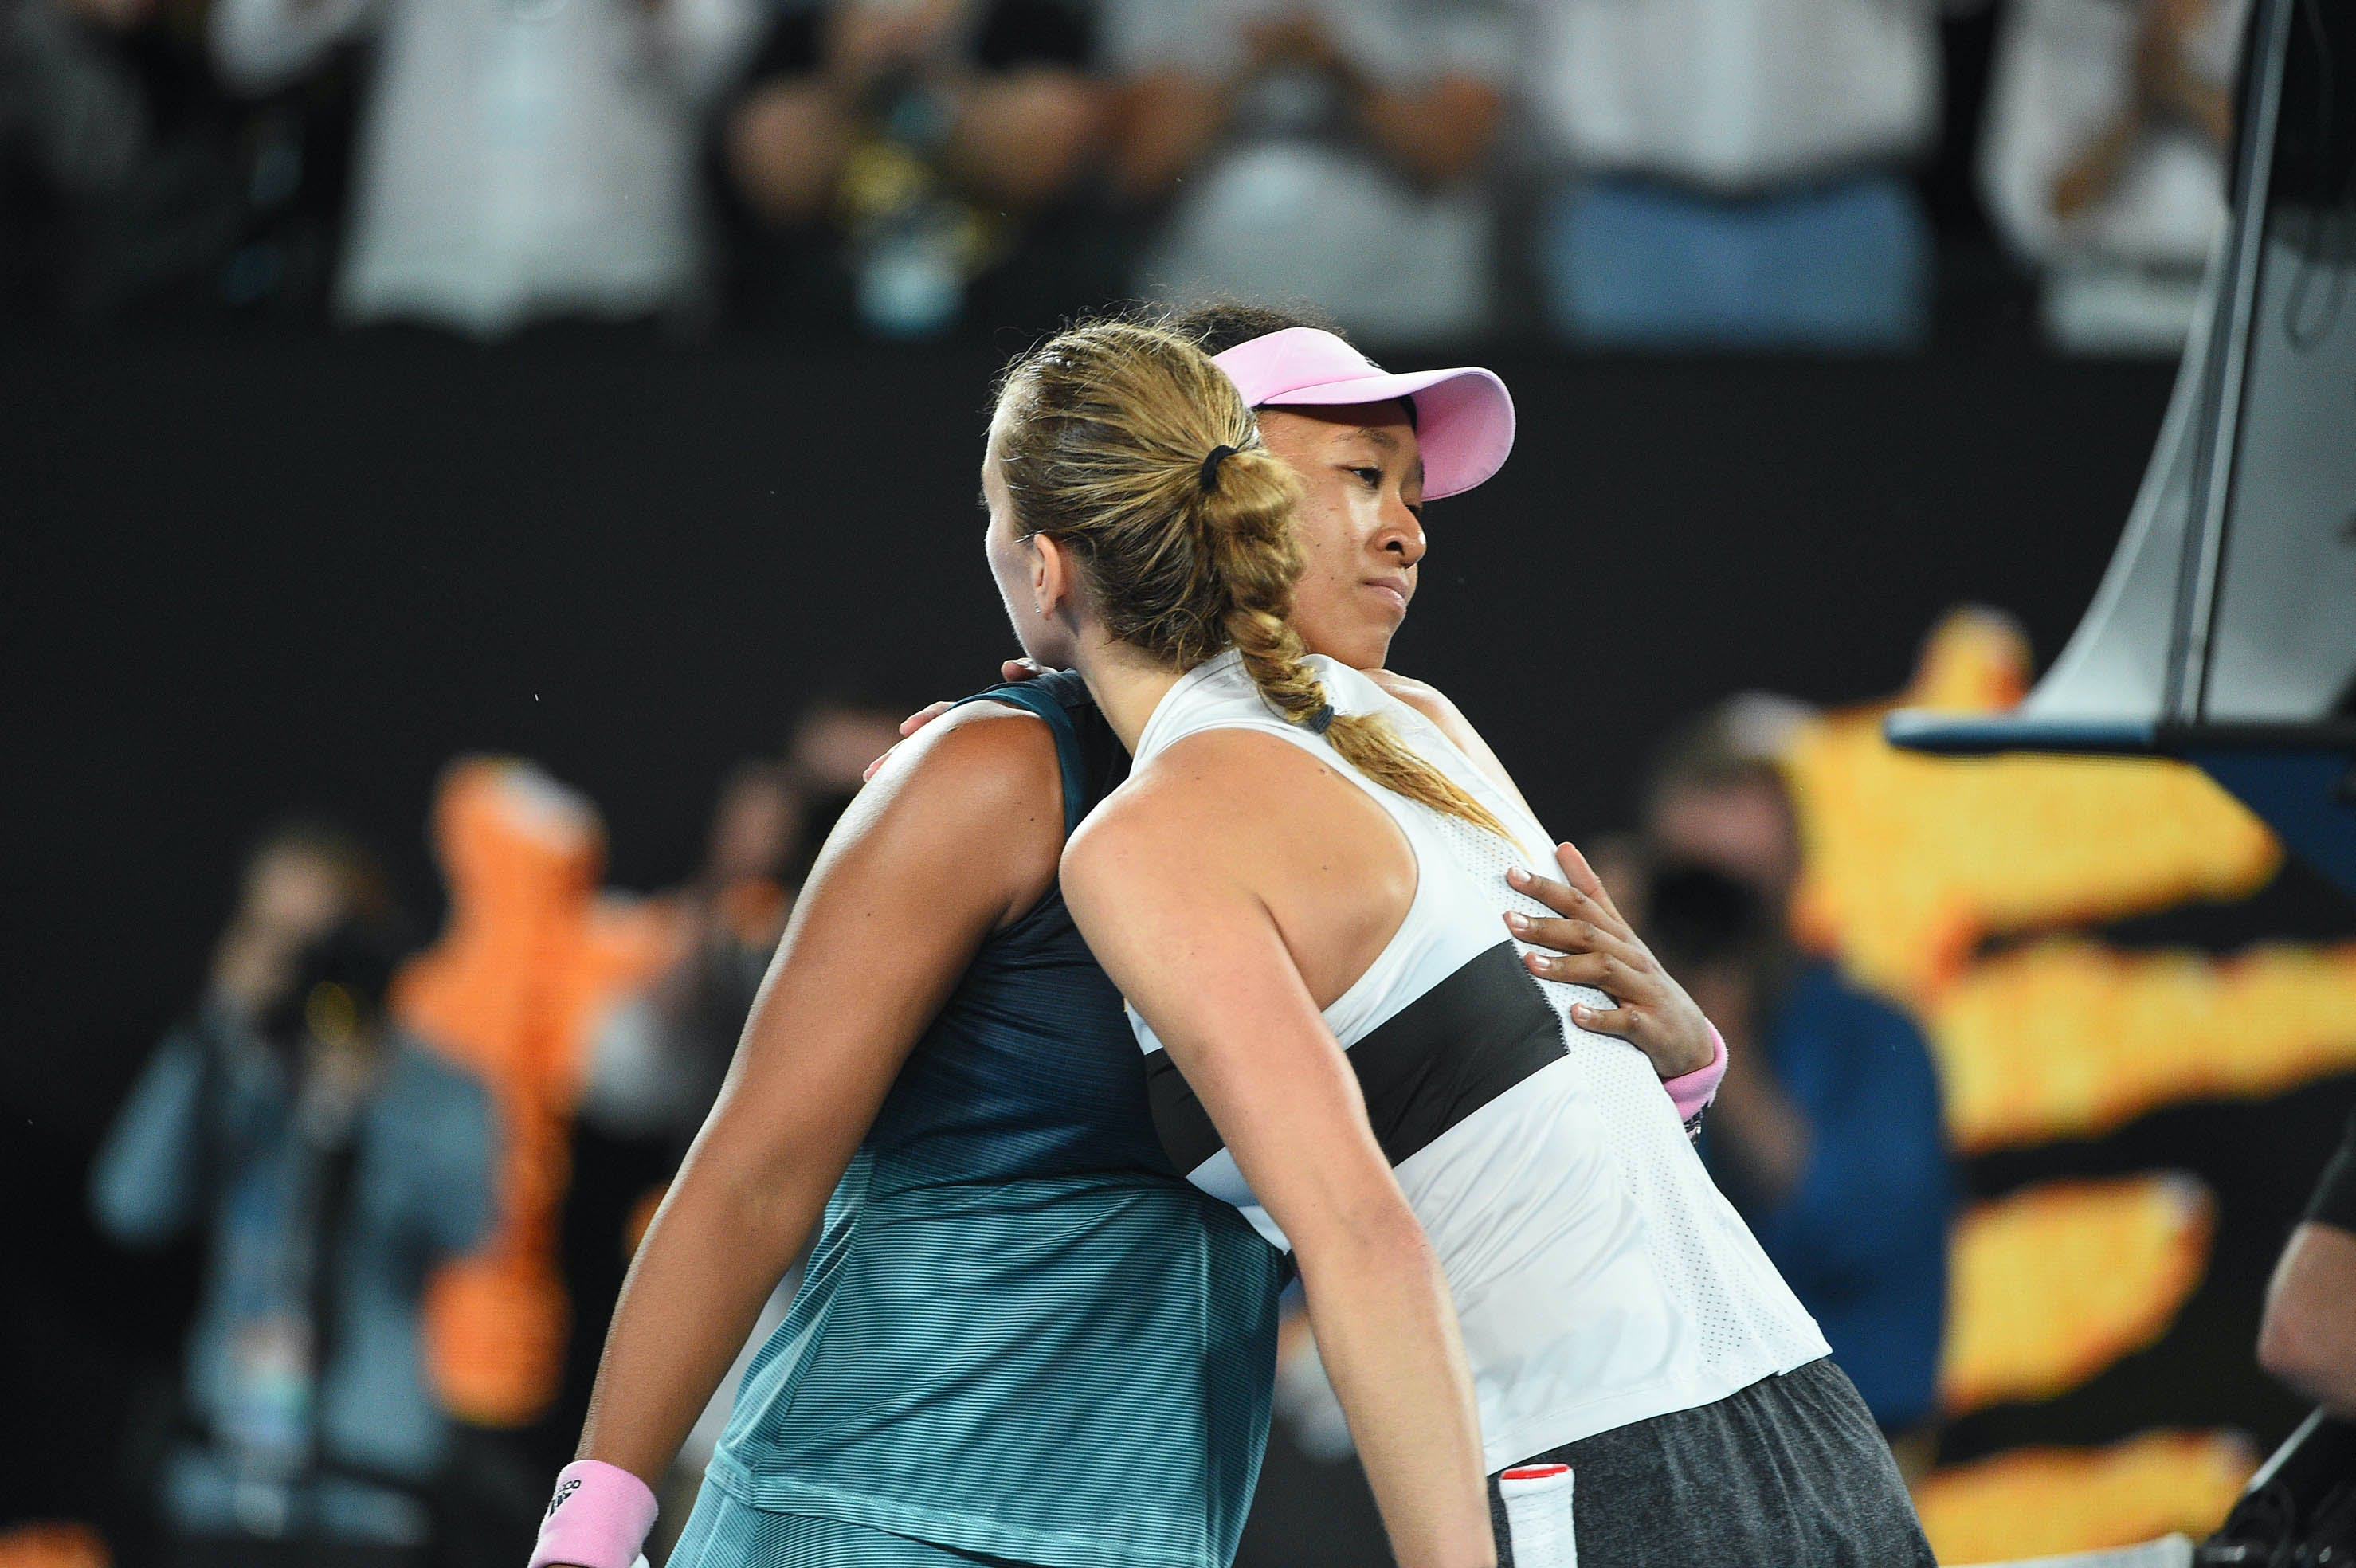 Nice hug at the net between Naomi OSaka and Petra Kvitova at the 2019 Australian Open